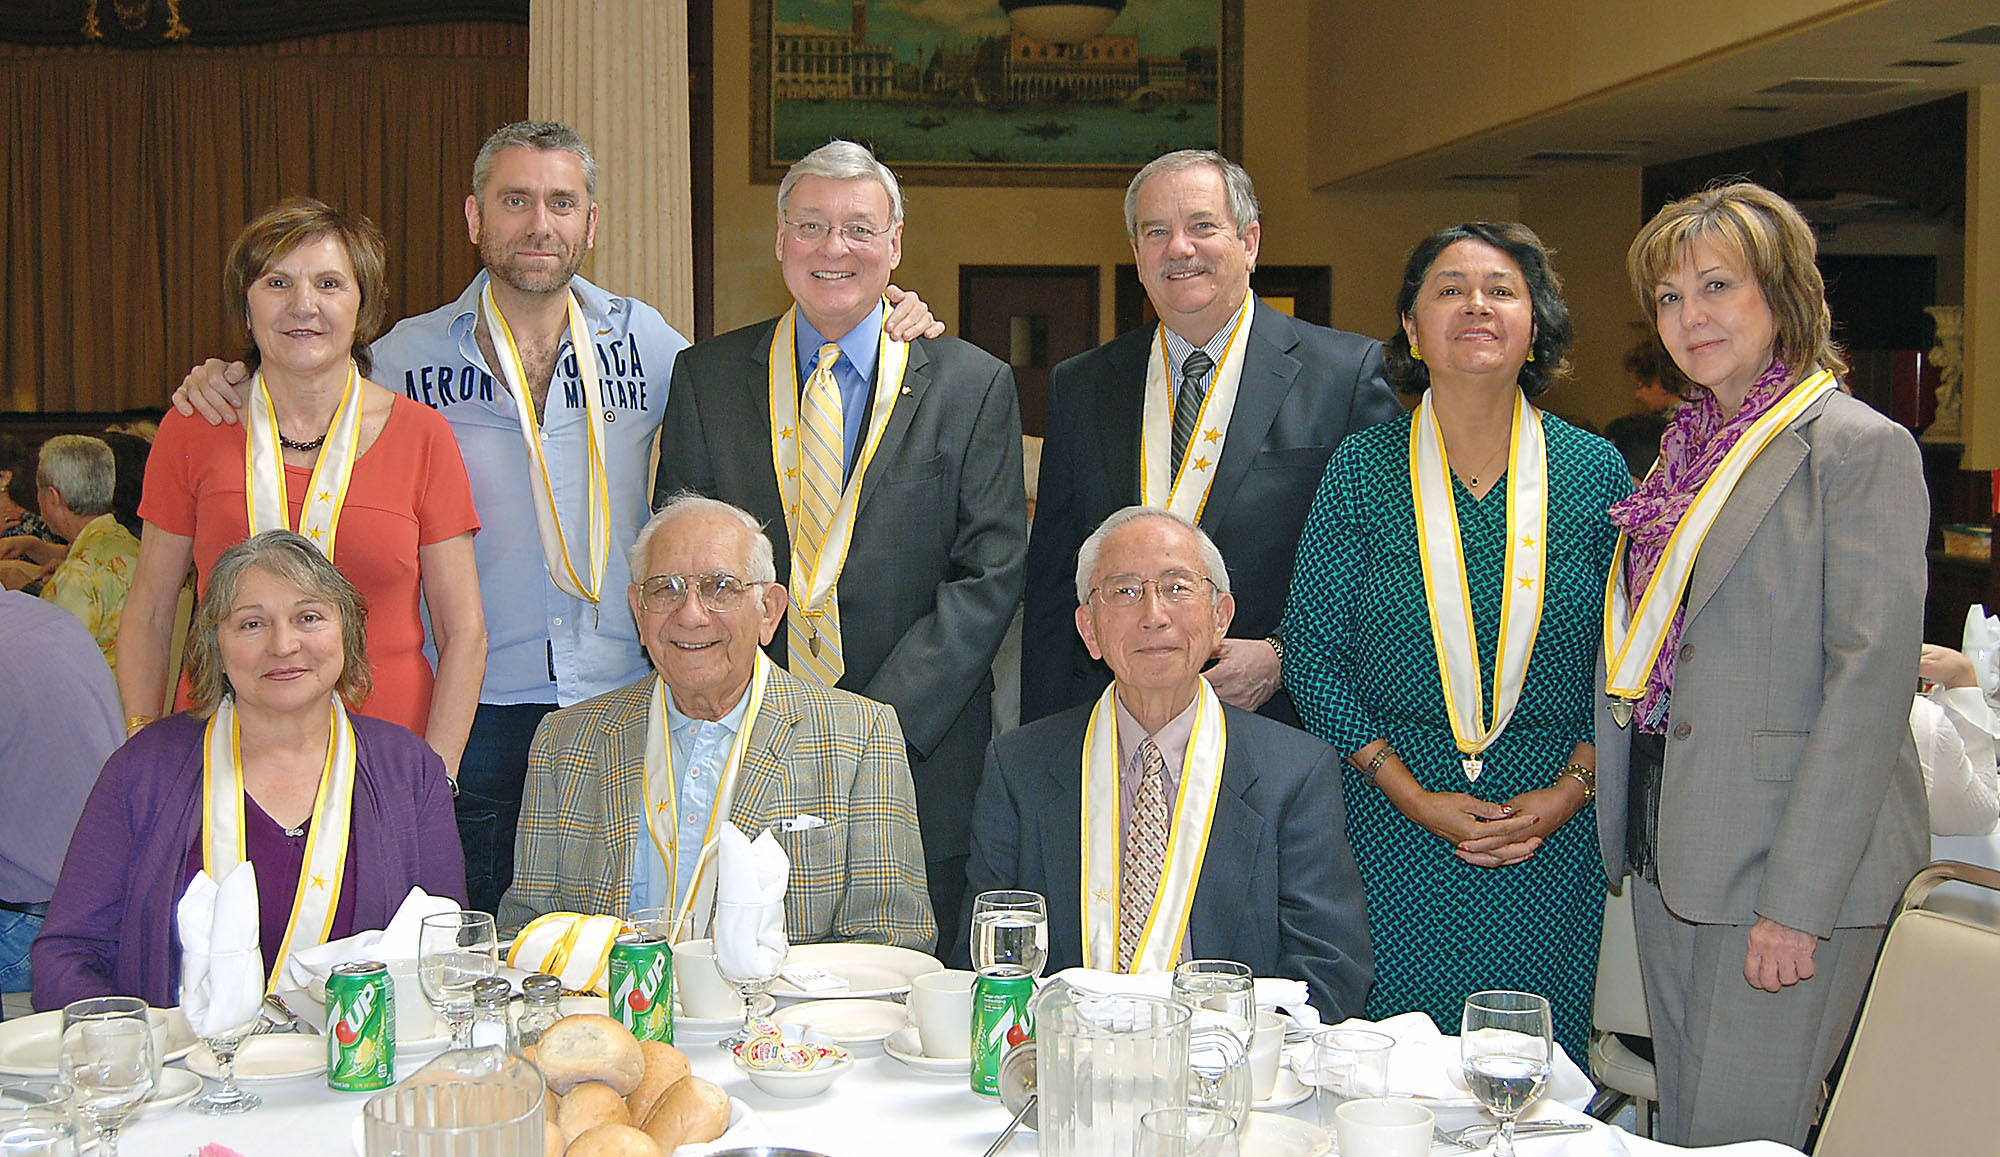 Board members of Italian Catholic Federation Branch 374 from St. Bede are shown here standing left to right: Fiora Marcucci Murphy, Masmiliano Leonida Bastone, Mark Mannarelli, Al Restivo, Branch president and first vice president of the district; Maria DeSalguera, and Rae Ann Mertz. Seated, from left, are Nancy Lieggi-Ammirato, Joseph Vinci and Jack Kojimoto.